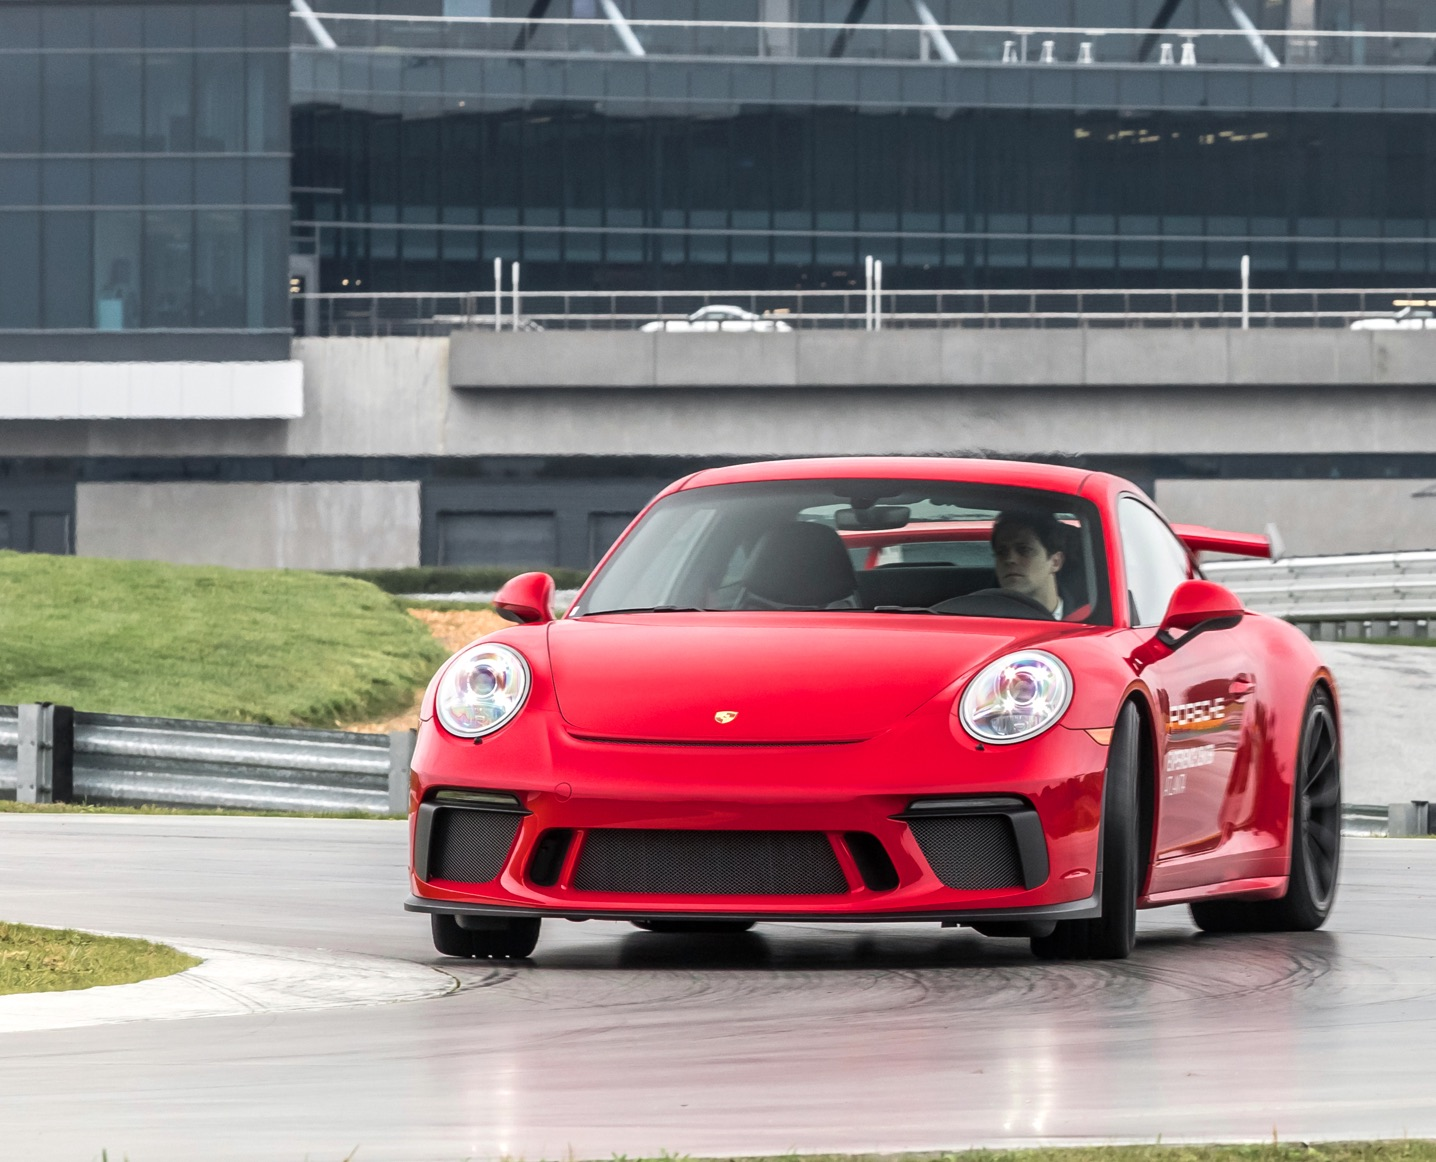 Red 911 GT3